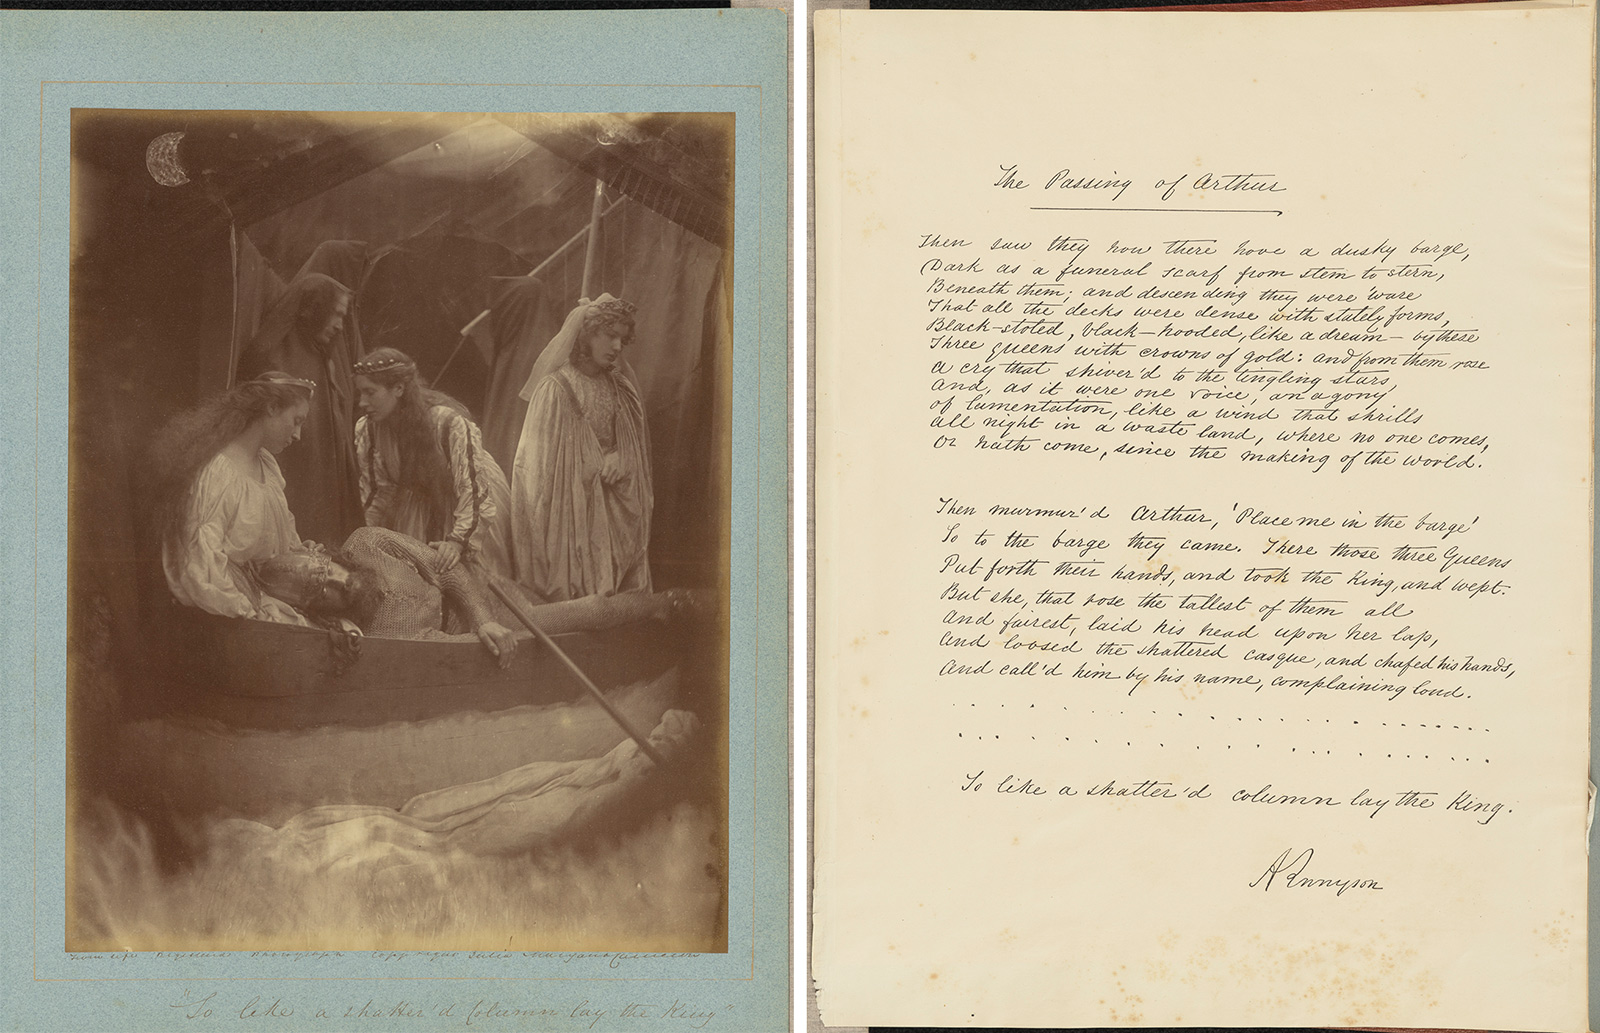 Left, Arthur's body is attended by three women in a boat. Right, a page from Idyll's of the King, titled The Passing of Arthur.